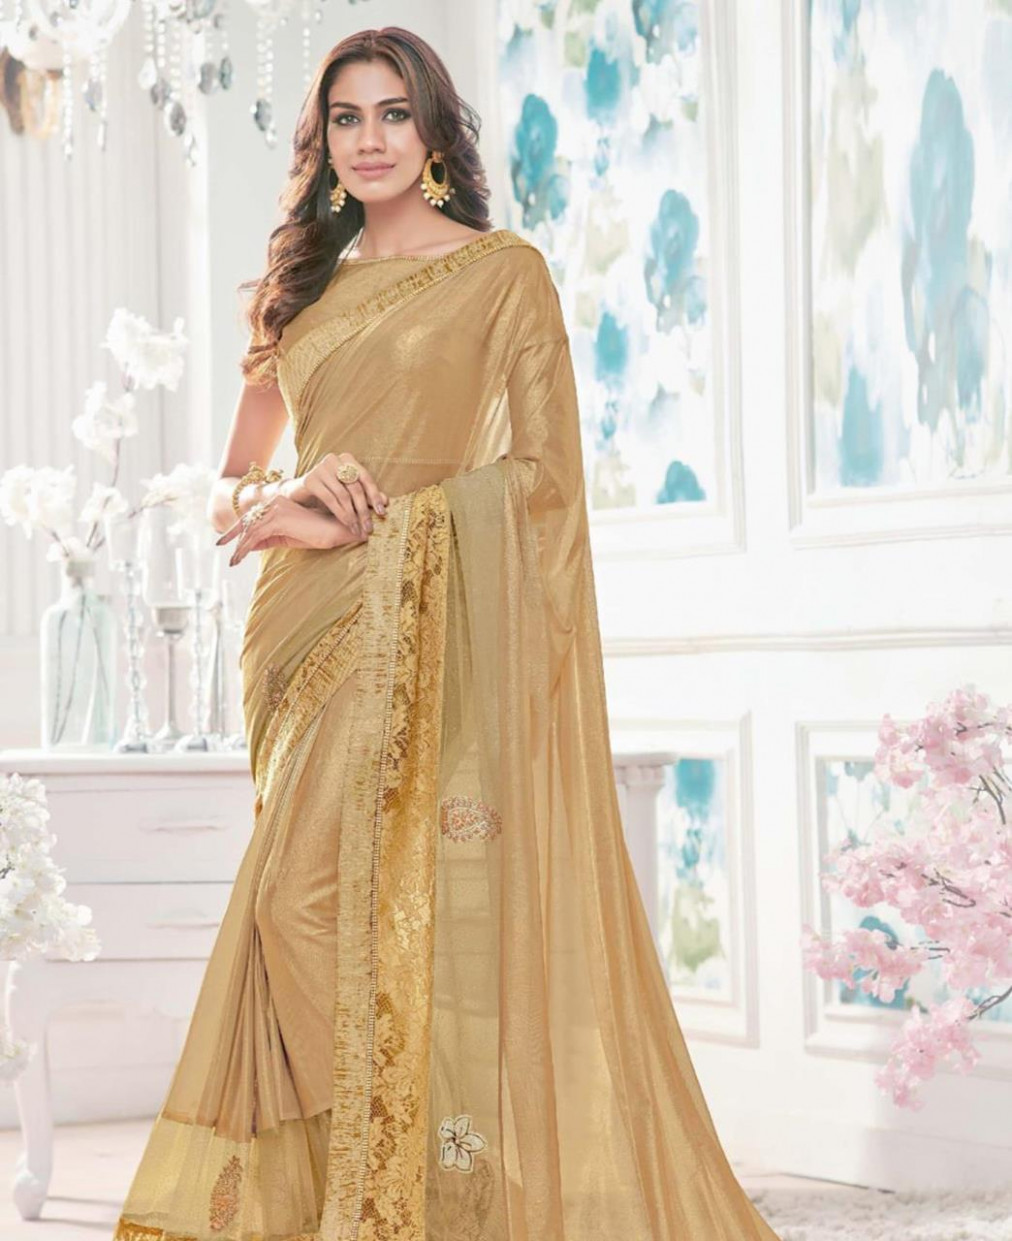 Buy Ravishing Gold Color Silk Saree [134971] at ₹ 3,850.92